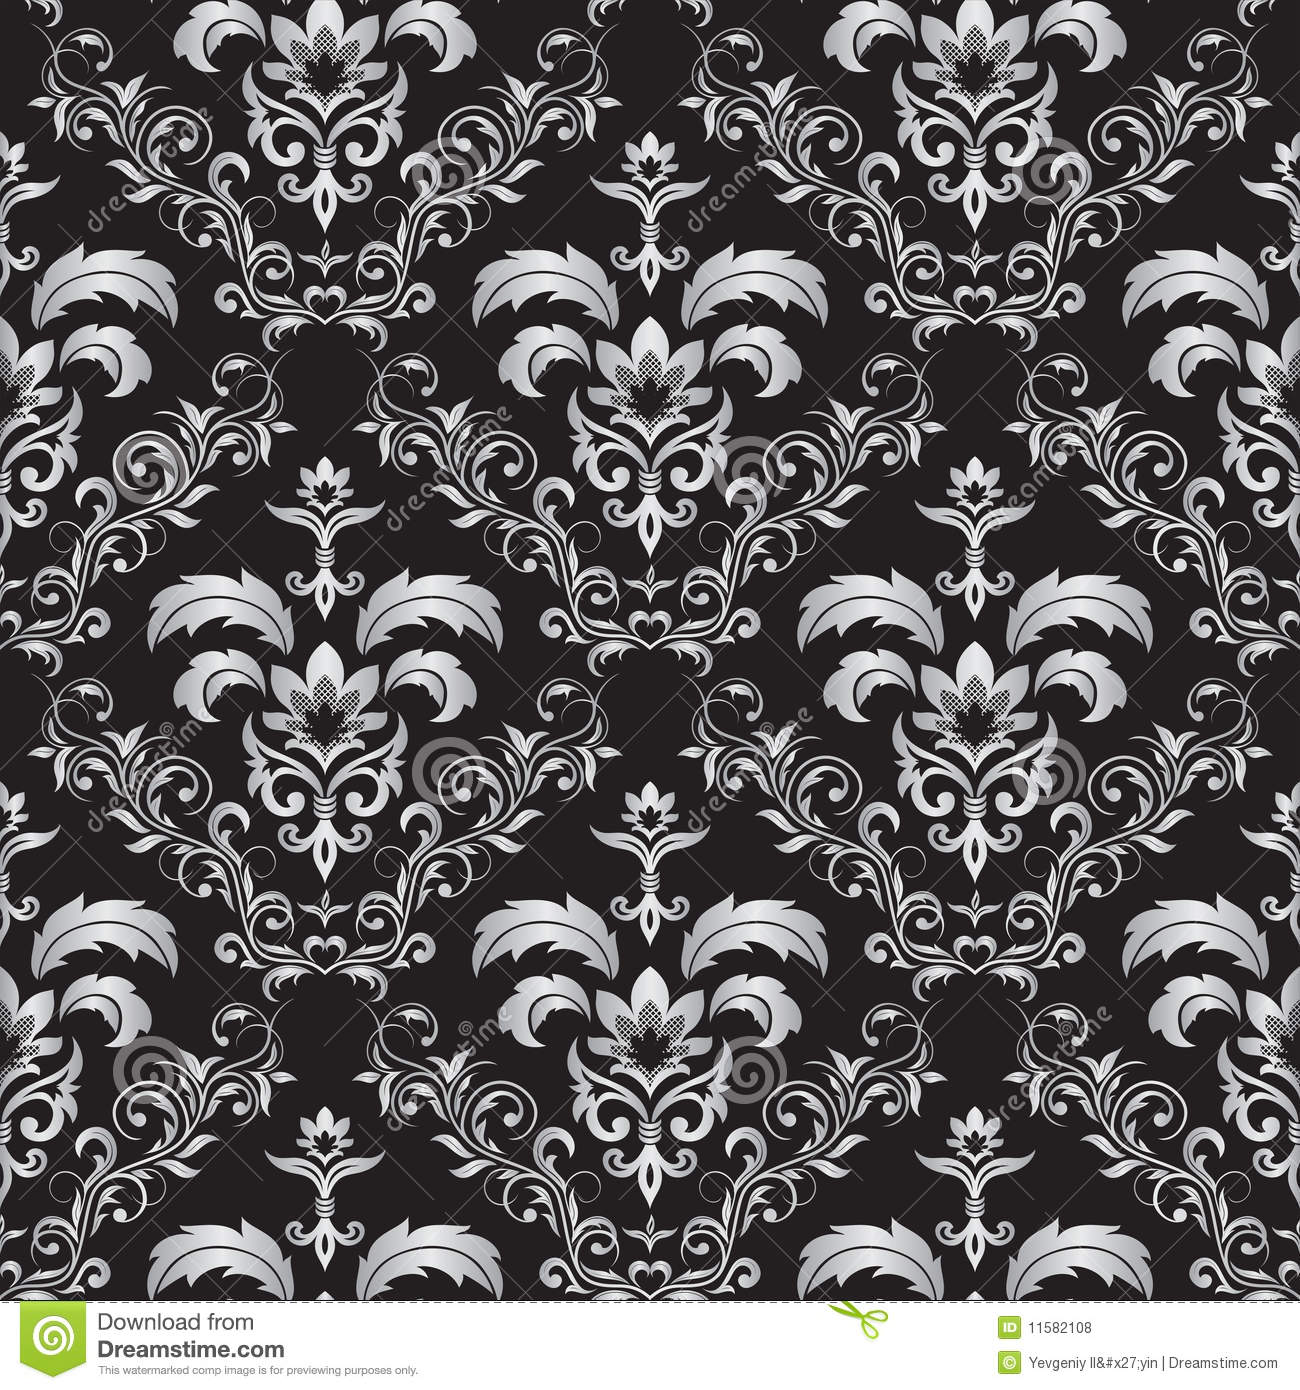 Gothic Pattern Wallpaper seamless gothic ornament royalty free stock photos - image: 11582108